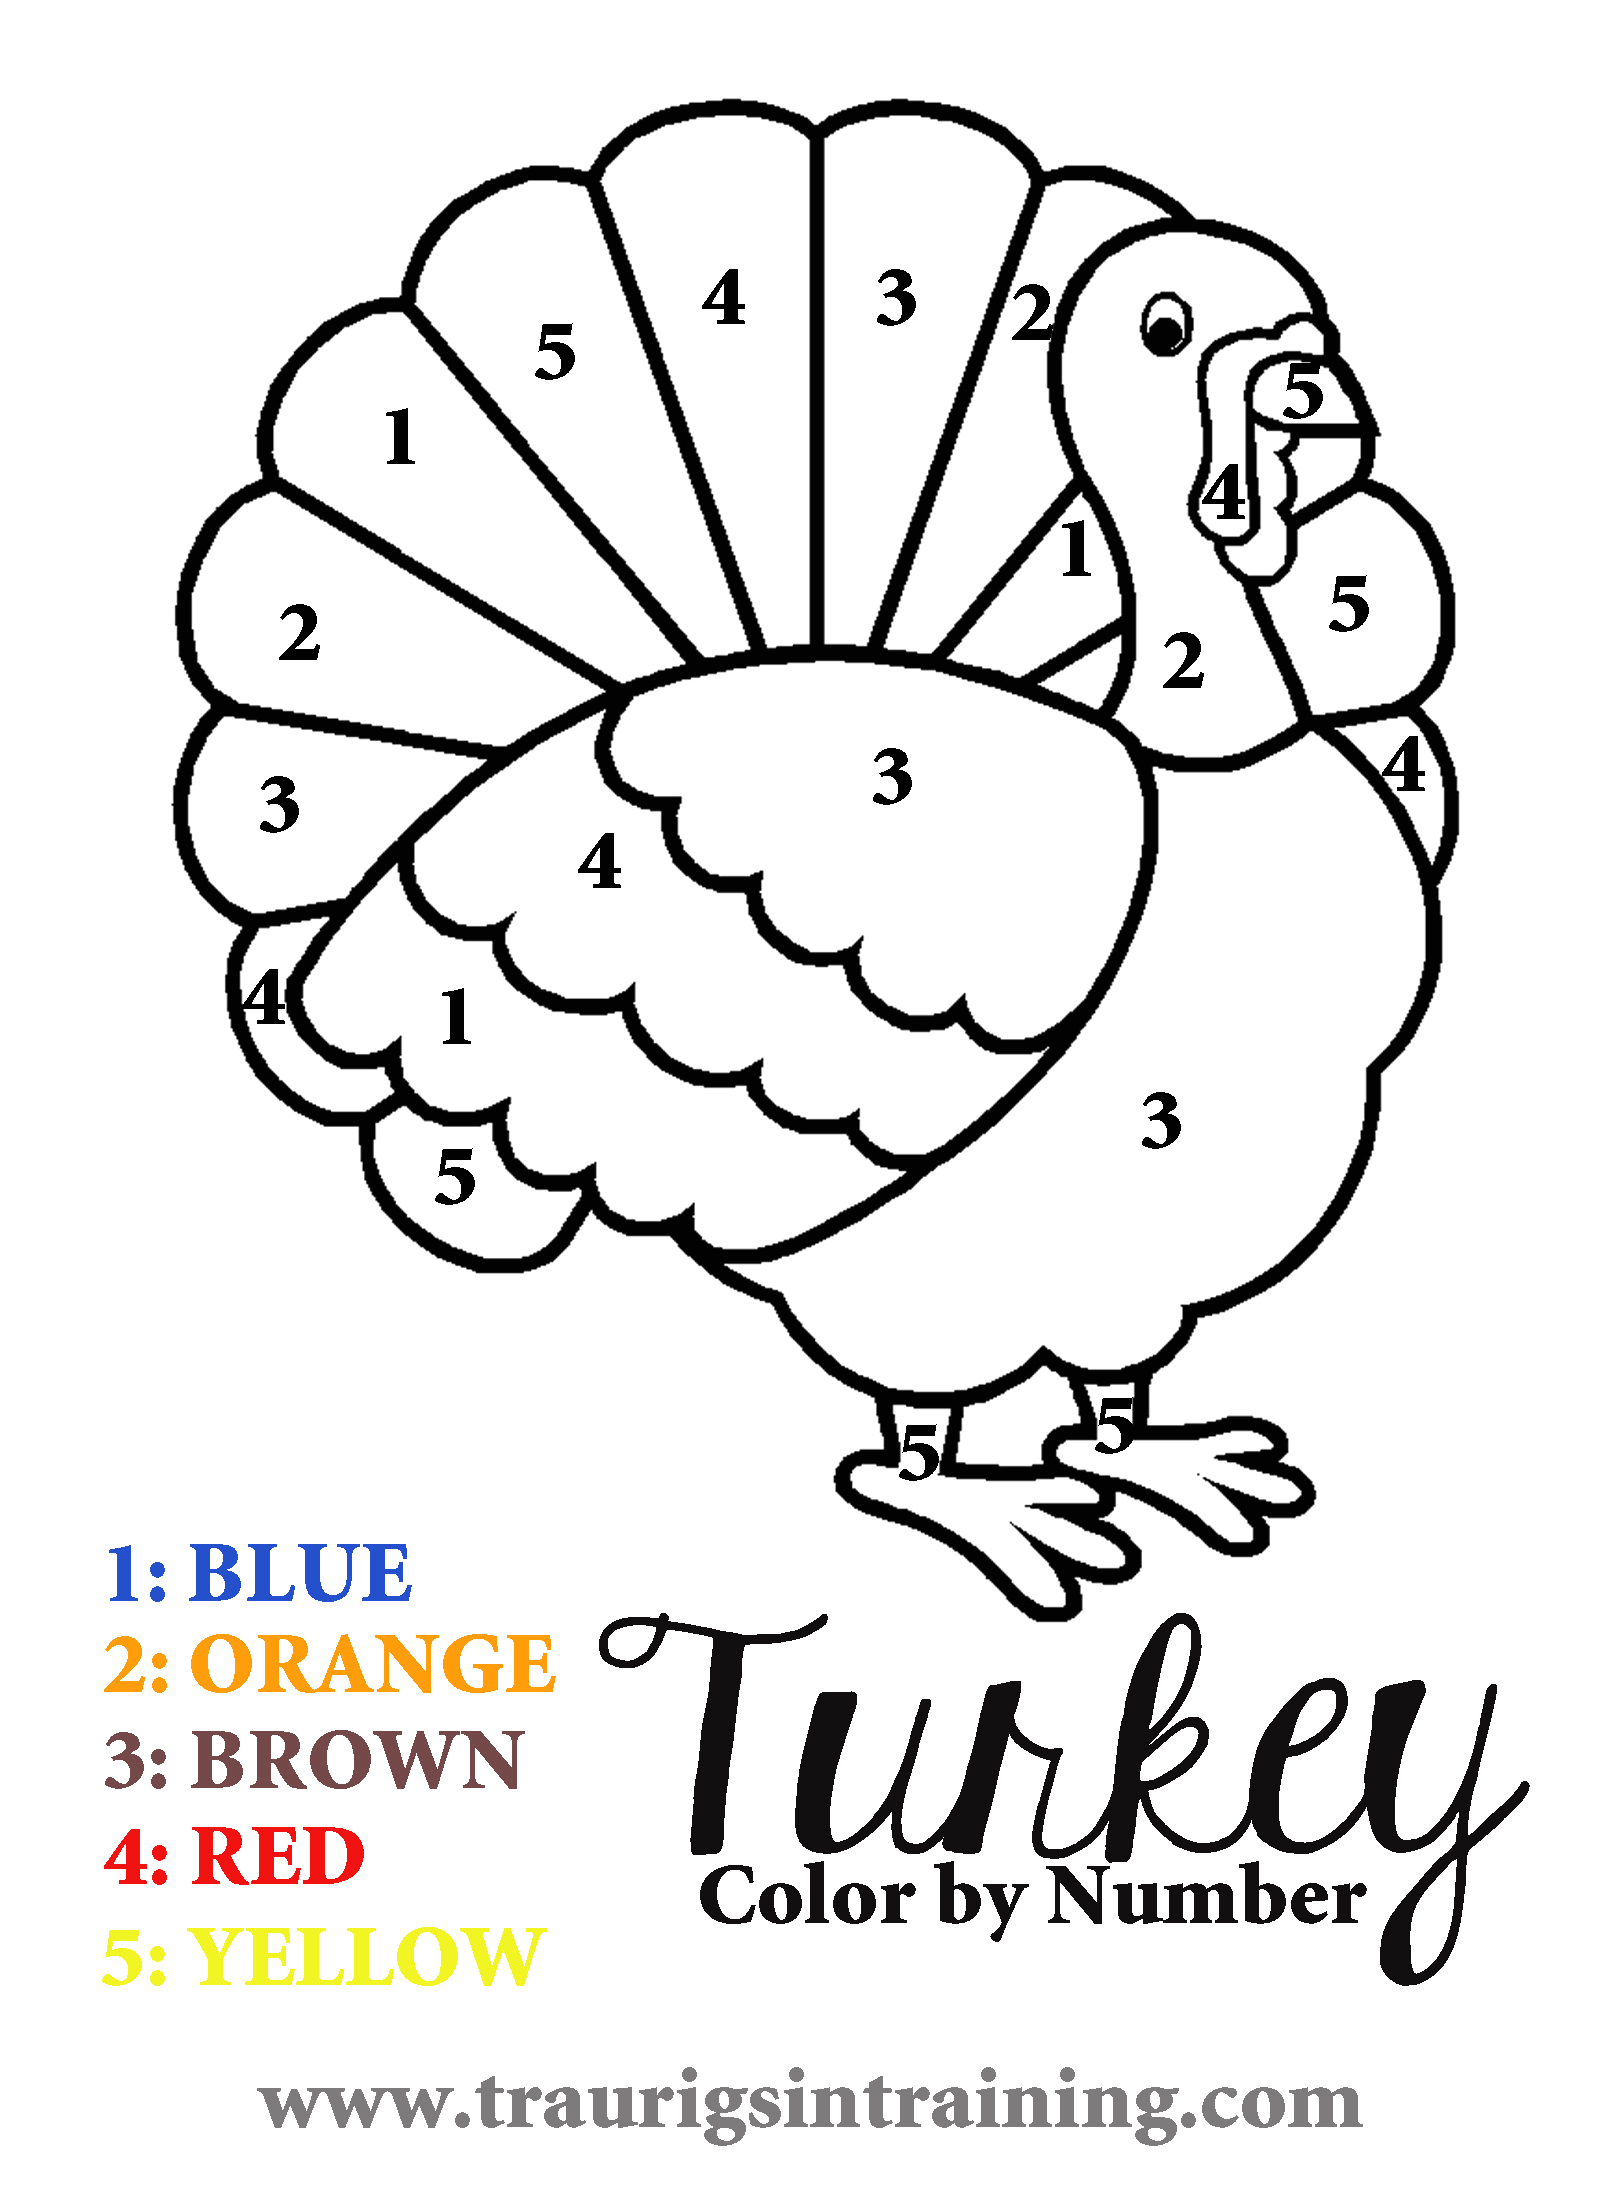 Printable Color by Number Thanksgiving Coloring Pages 6 Best Of Free Printable Color by Number Turkey